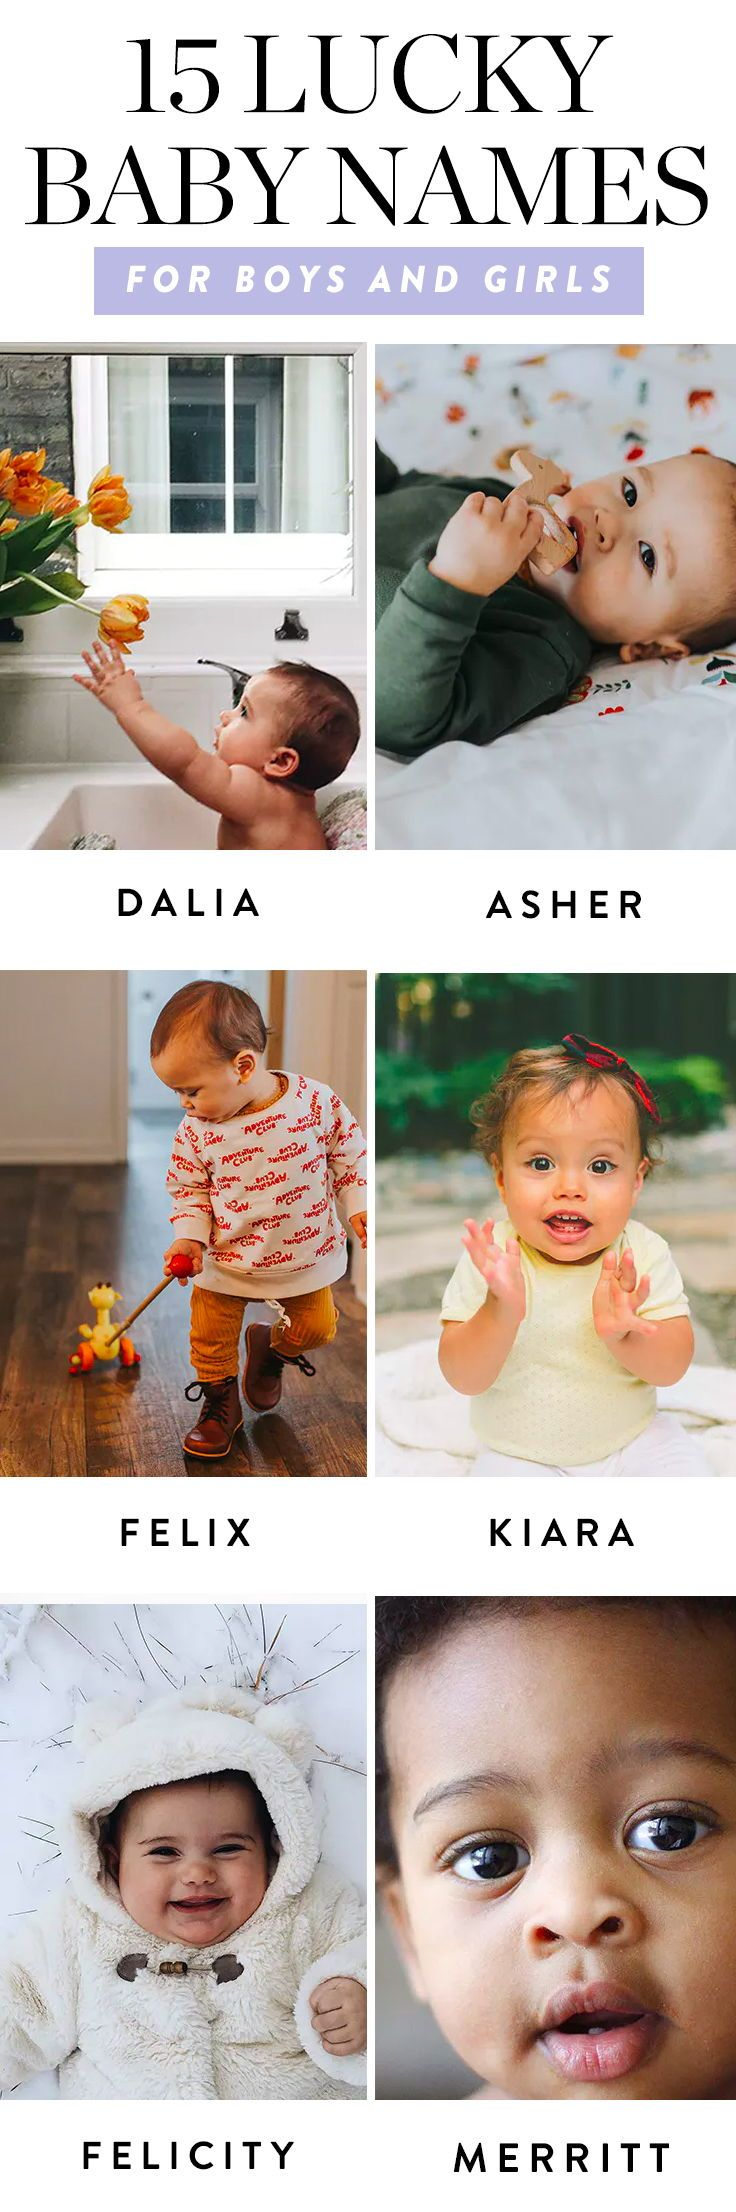 15 Lucky Baby Names for Boys and Girls #babynames #luckynames #baby